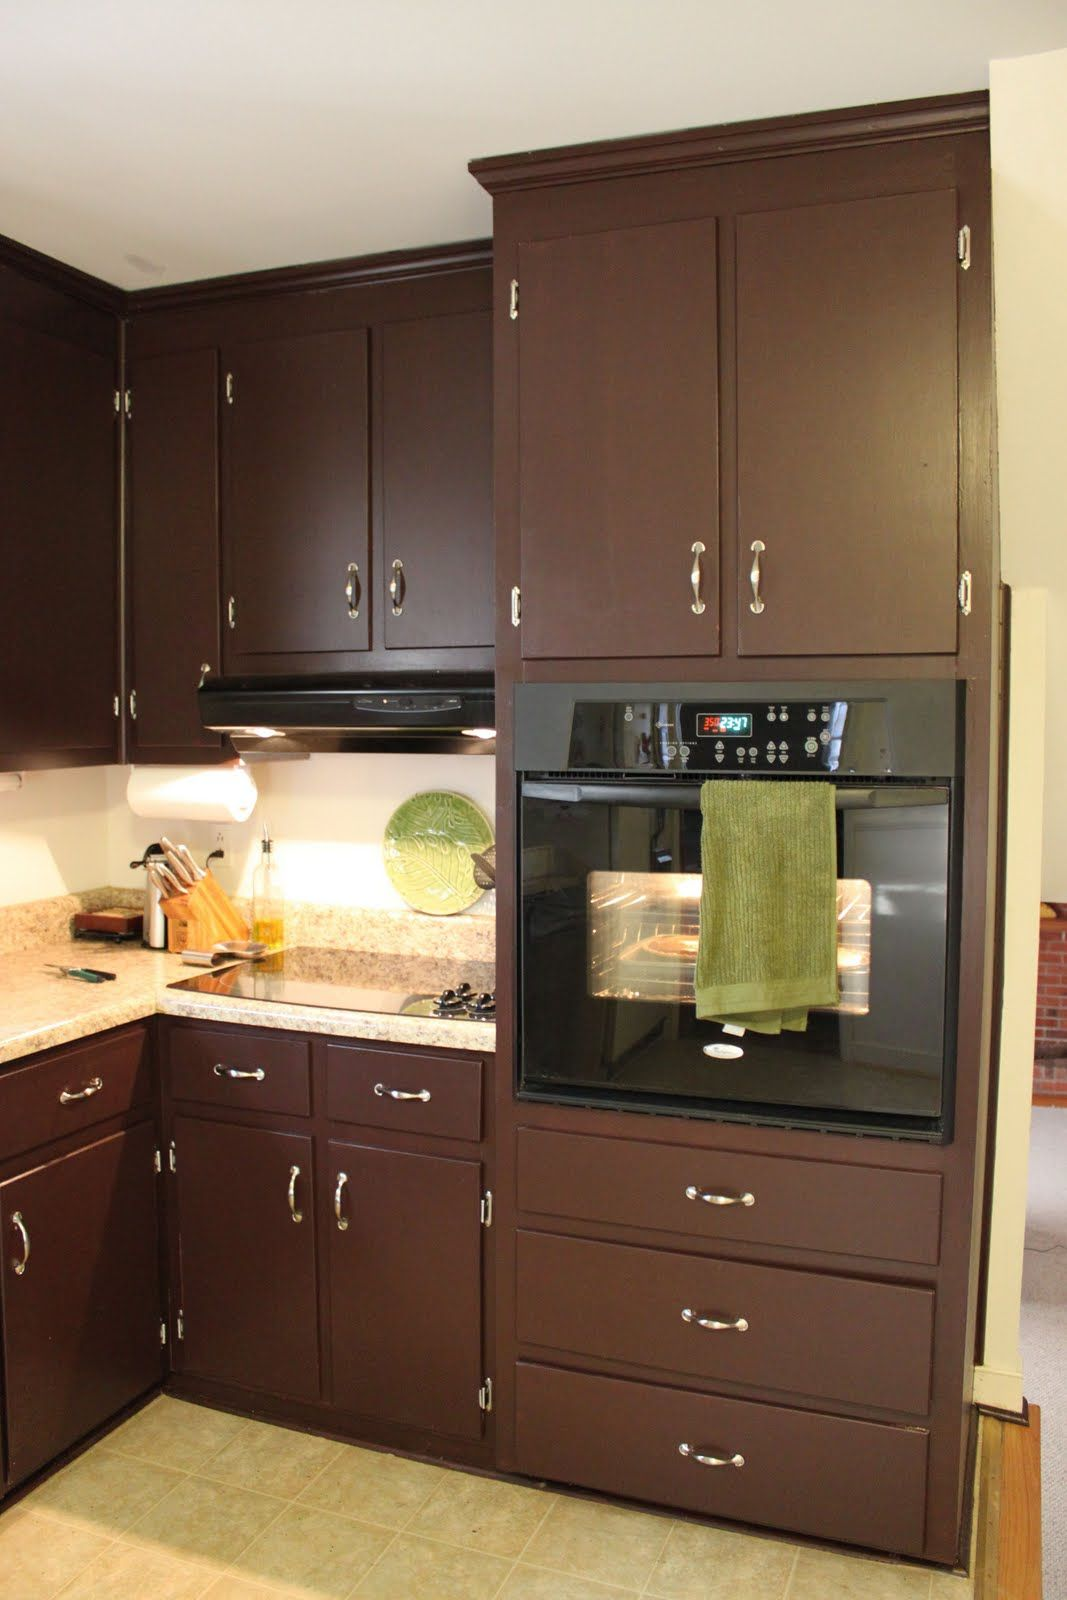 brown painted kitchen cabinets & silver hardware .. looks like our on painted kitchen drawers, painted bath cabinets, painted kitchen doorway, painted fridge doors, painted glass doors, painted kitchen floors, painted kitchen backsplash, painted mirror doors, painted kitchen windows, painted contemporary kitchen cabinets, painted flat cabinet doors, painted kitchen signs, painted kitchen kitchen cabinets, painted white kitchen cabinets, painted modern kitchen, painted two tone kitchen cabinets, painted kitchen cabinets with granite, painted black kitchen cabinets, painted cabinet doors replacement, painted mouldings,